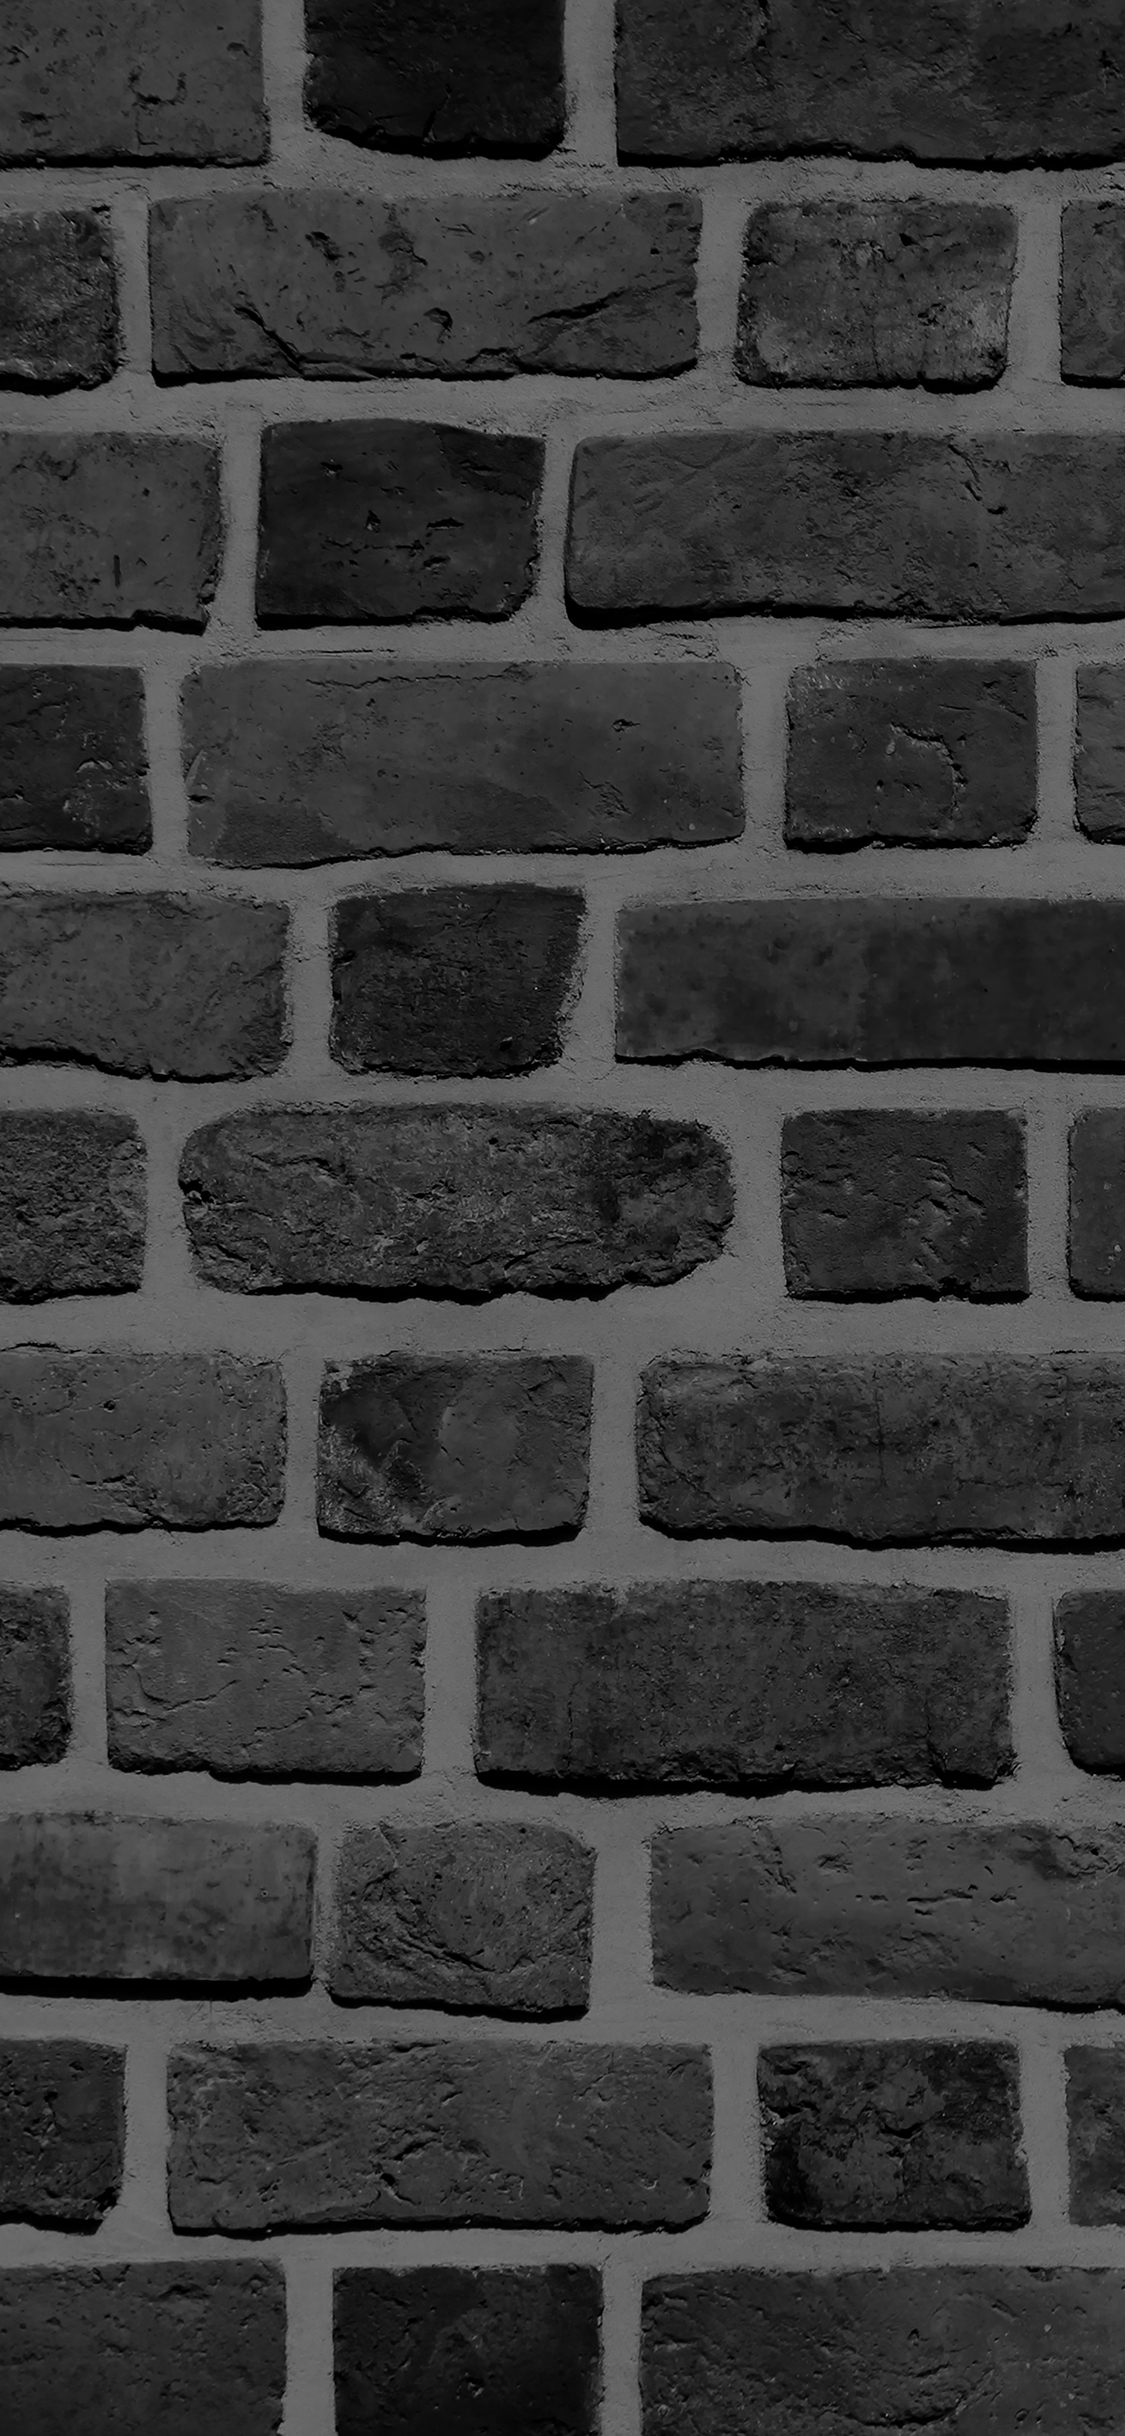 iPhoneXpapers.com-Apple-iPhone-wallpaper-vf57-brick-texture-wall-bw-black-nature-pattern